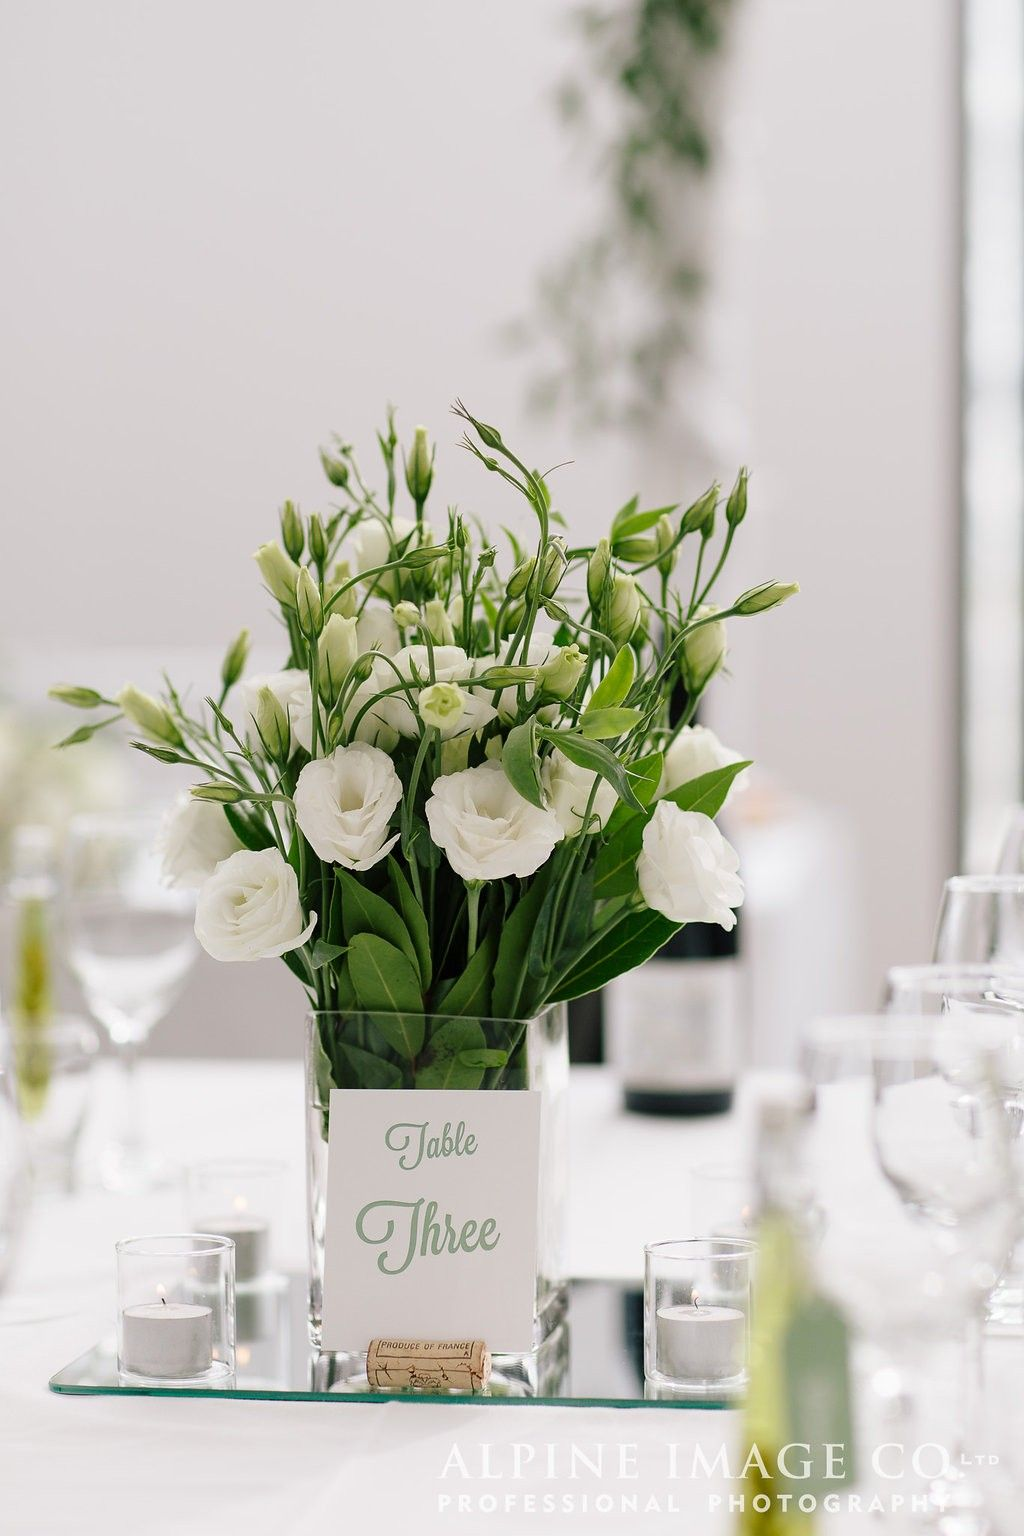 Simple elegant square vase of white lisianthus and greenery for ...